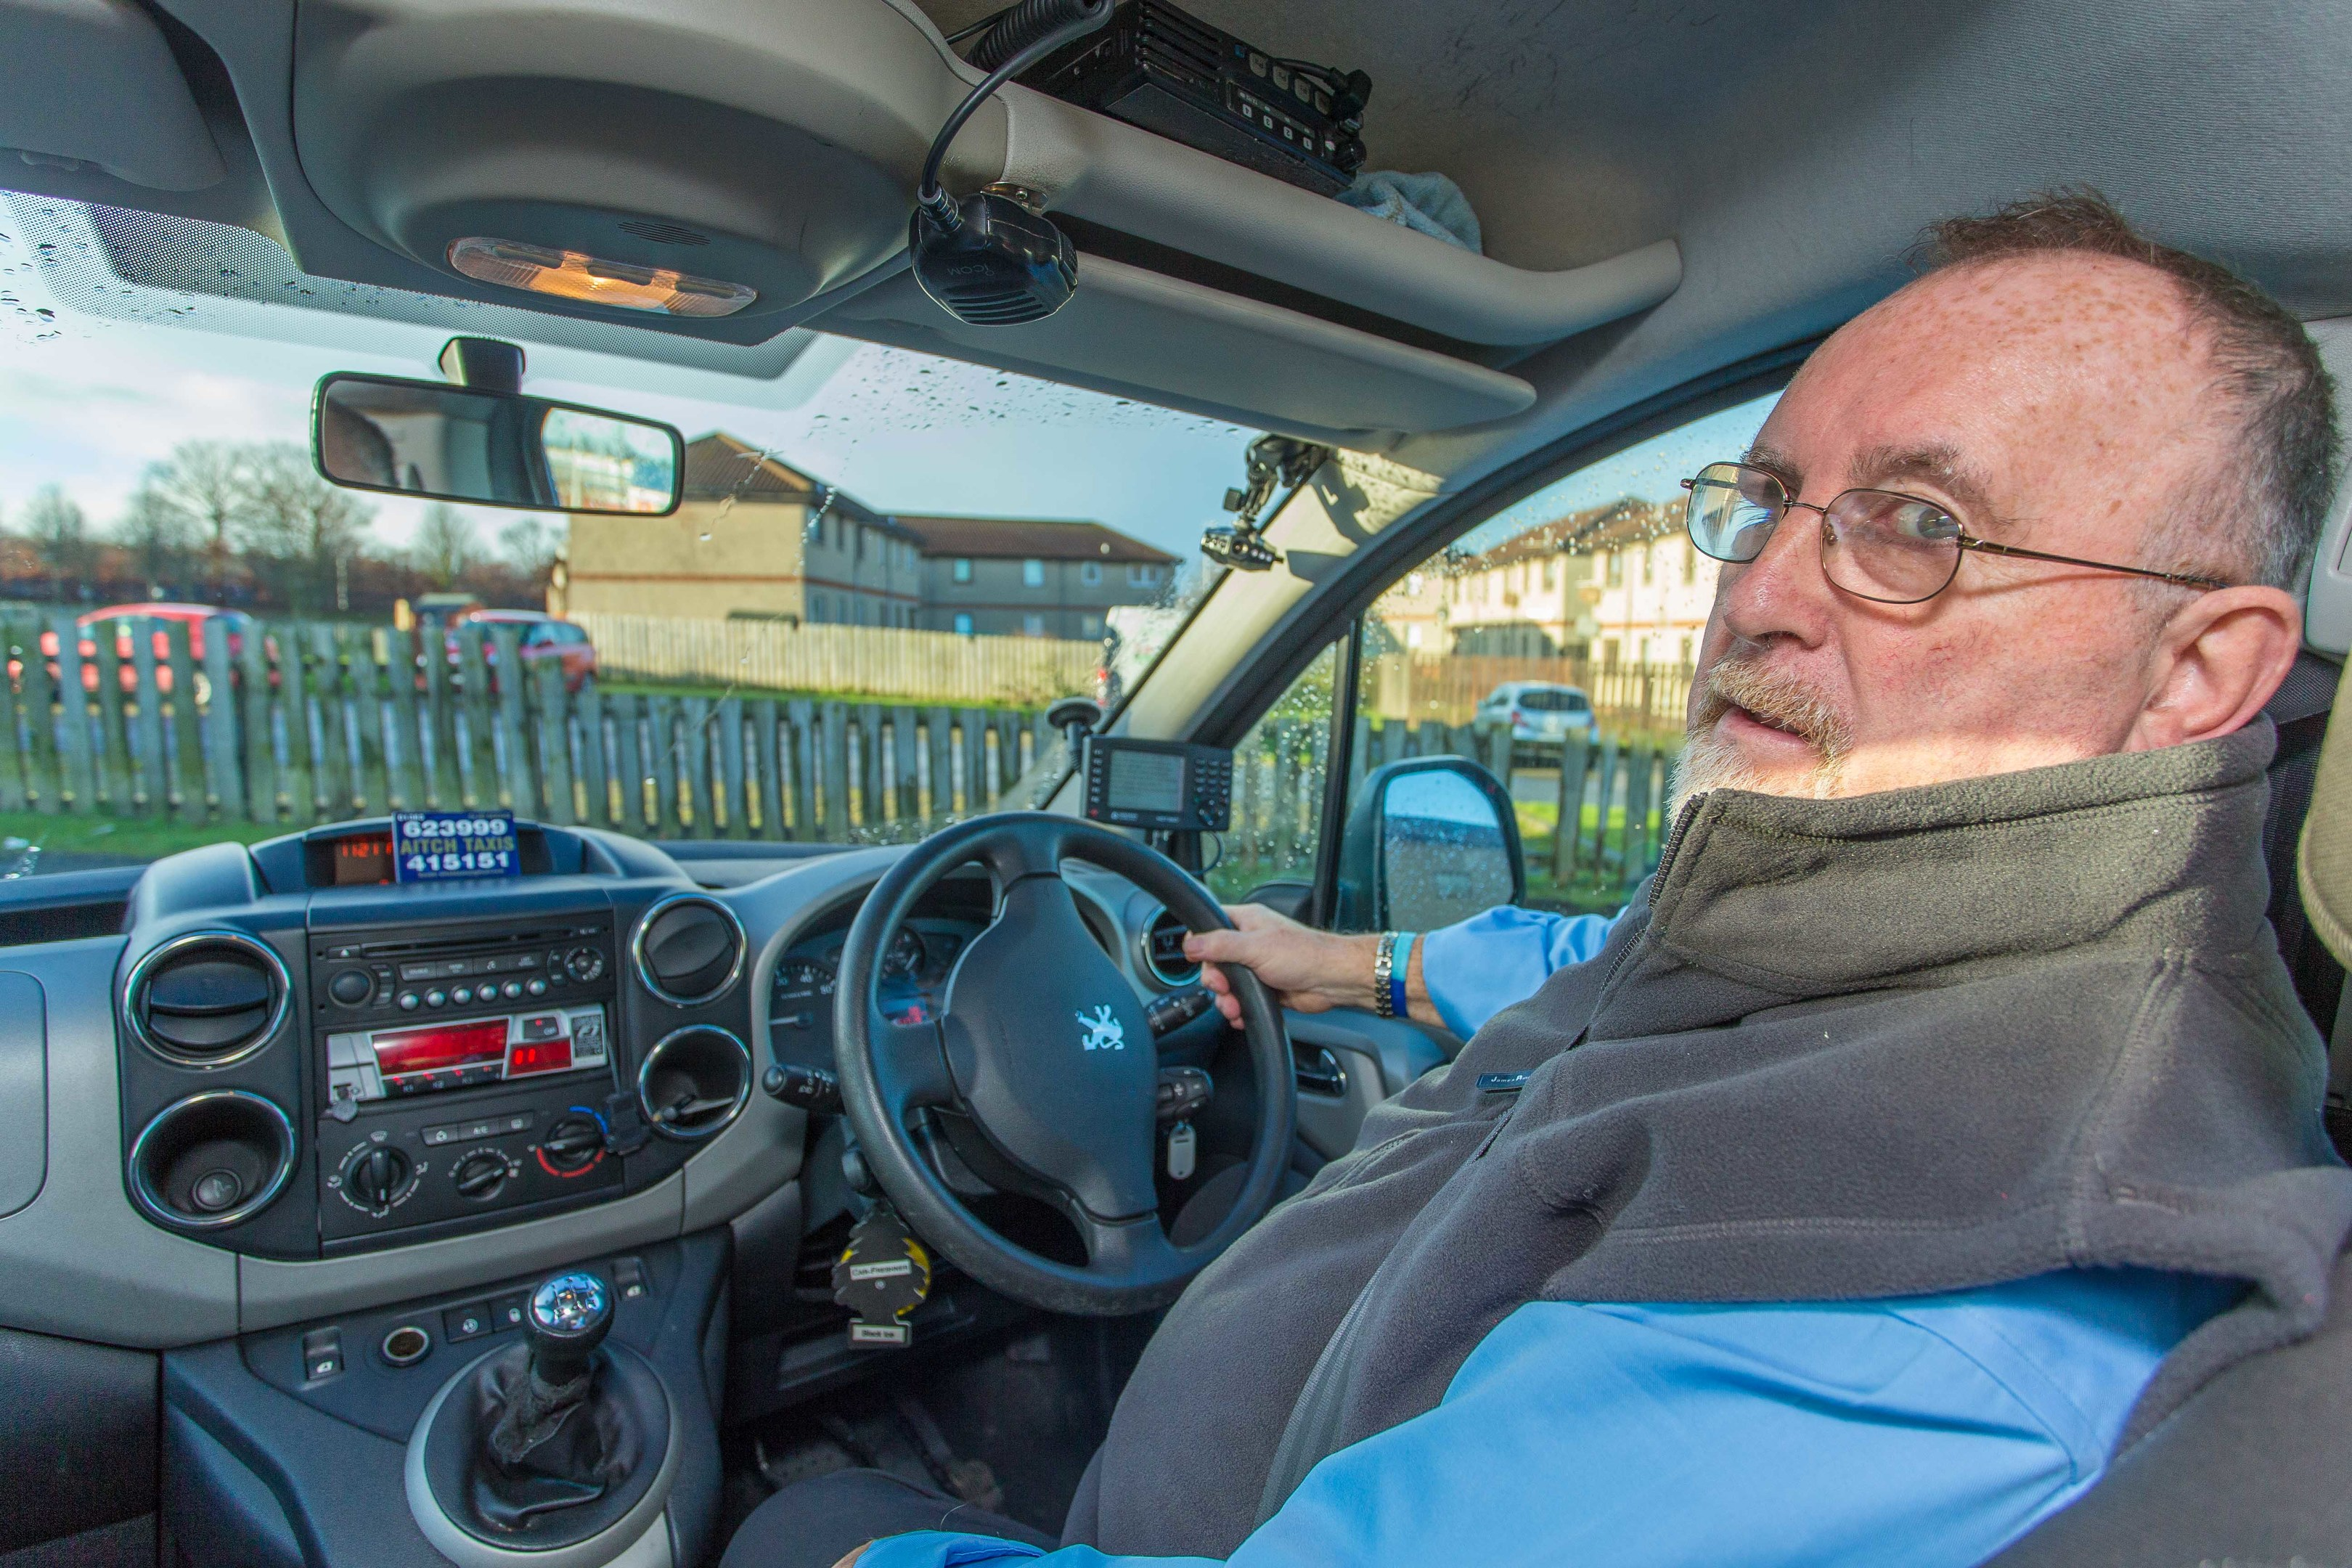 John Aitchison of A1tch Taxis showing the CCTV camera system used in their vehicles.